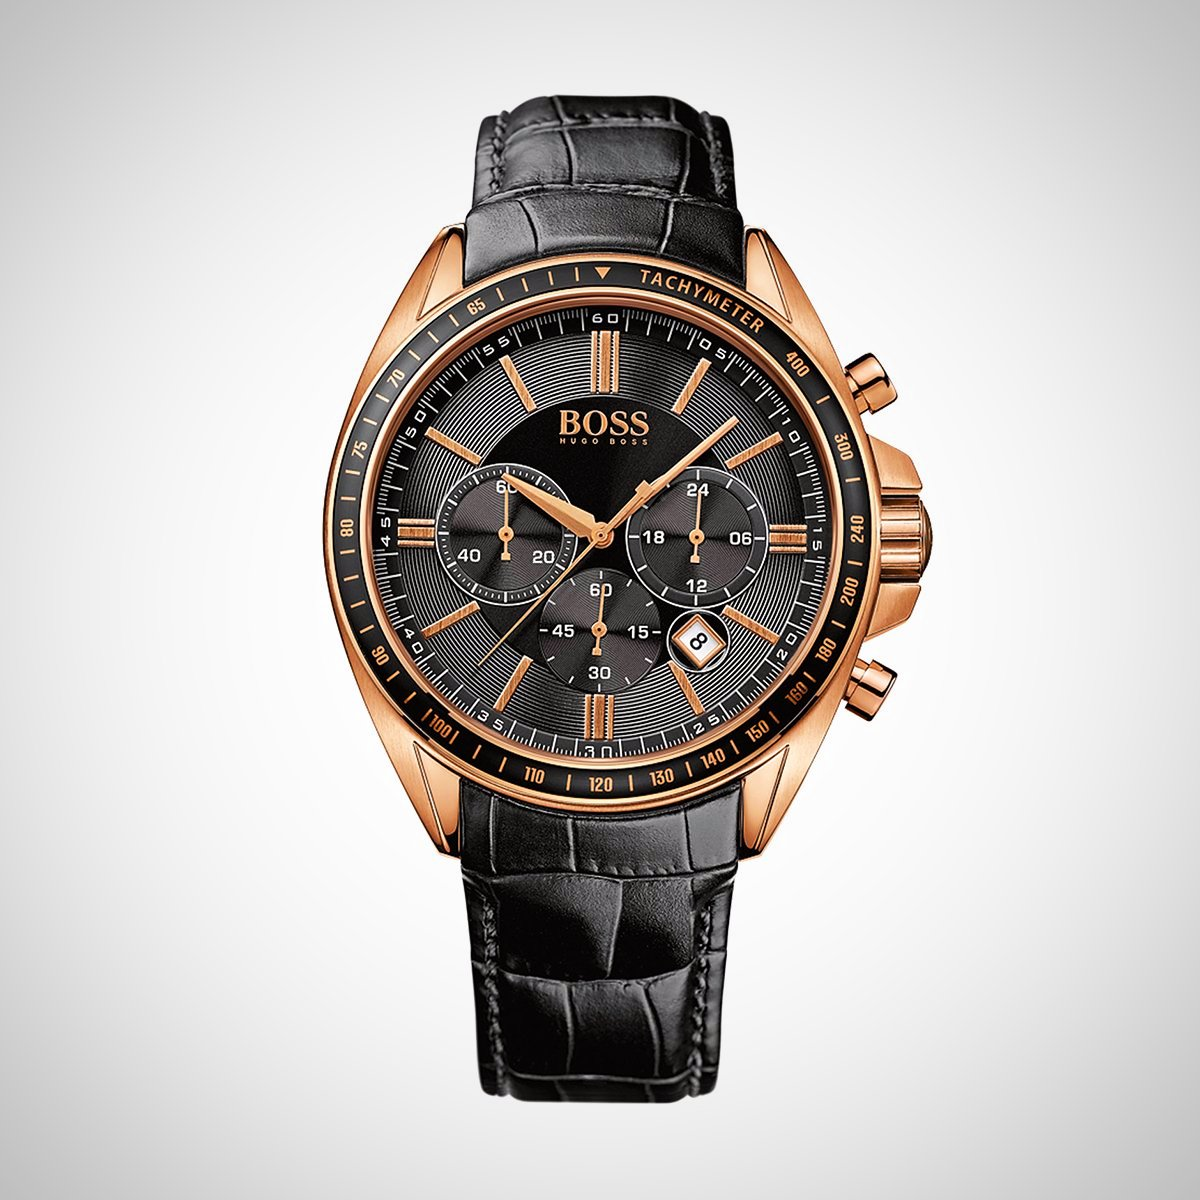 Hugo Boss 1513092 Men's Chronograph Watch With Black Croc Embossed Leather Strap